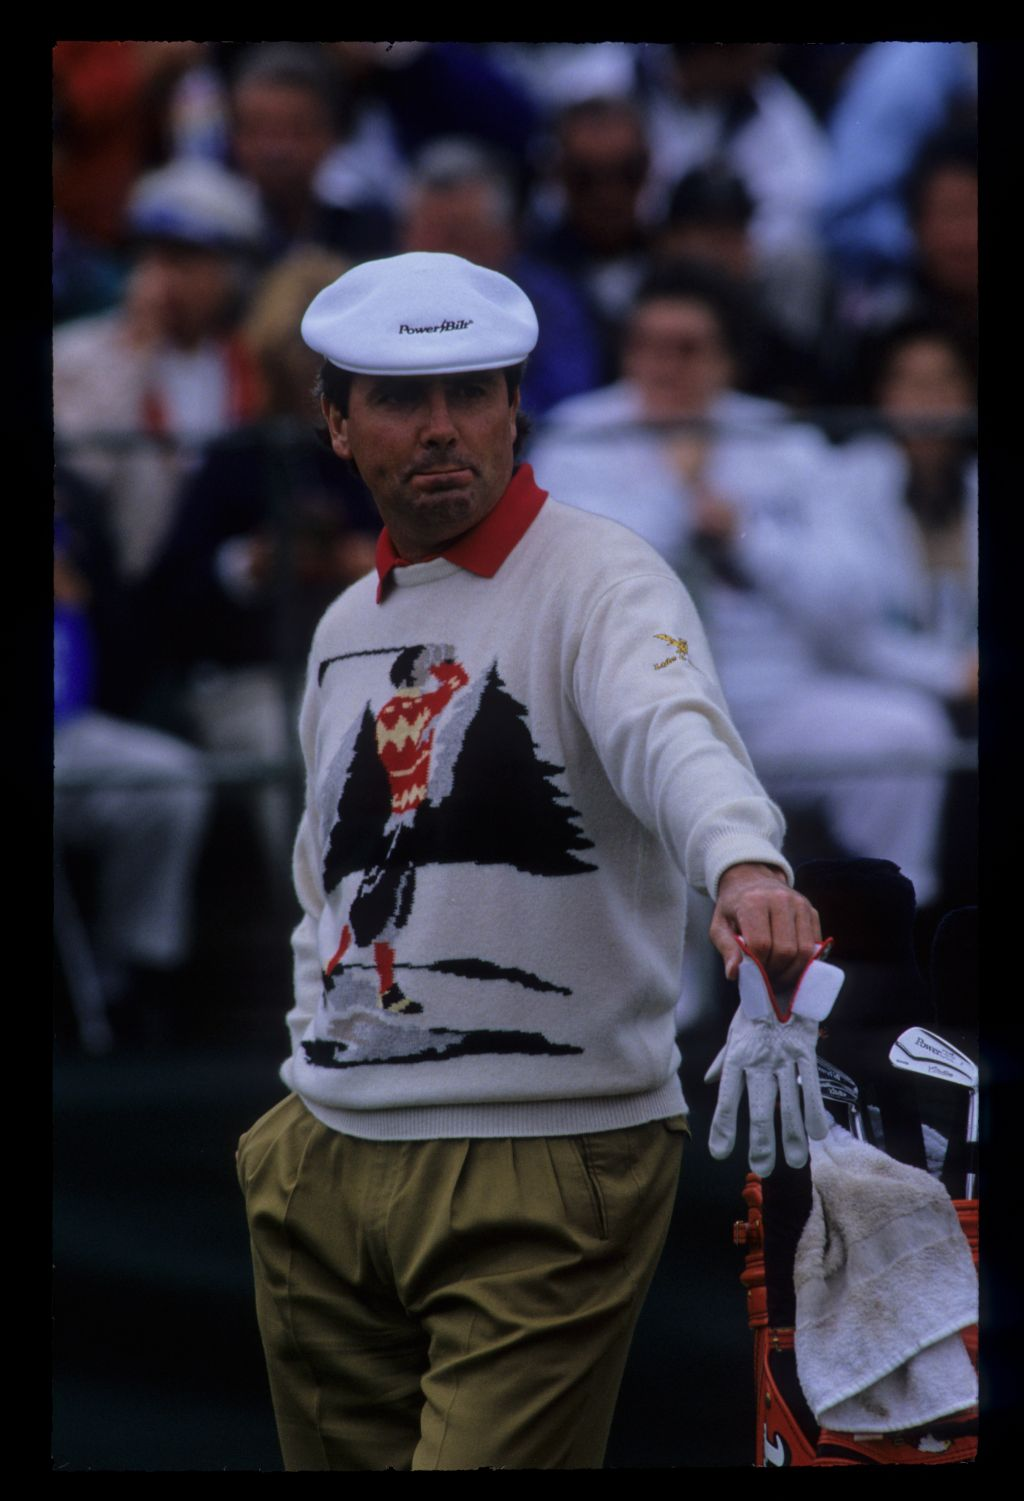 Mark McNulty leaning on his golf bag during the 1992 US Open